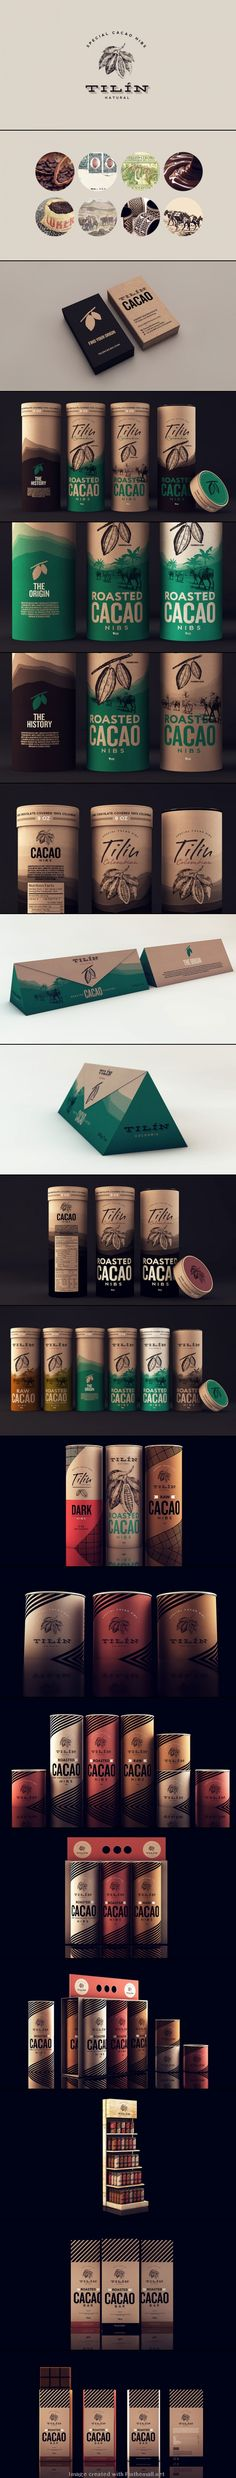 Tilín Cacao Branding | #packing #packaging #verpackung #creative #paper #marketing #corporate #design